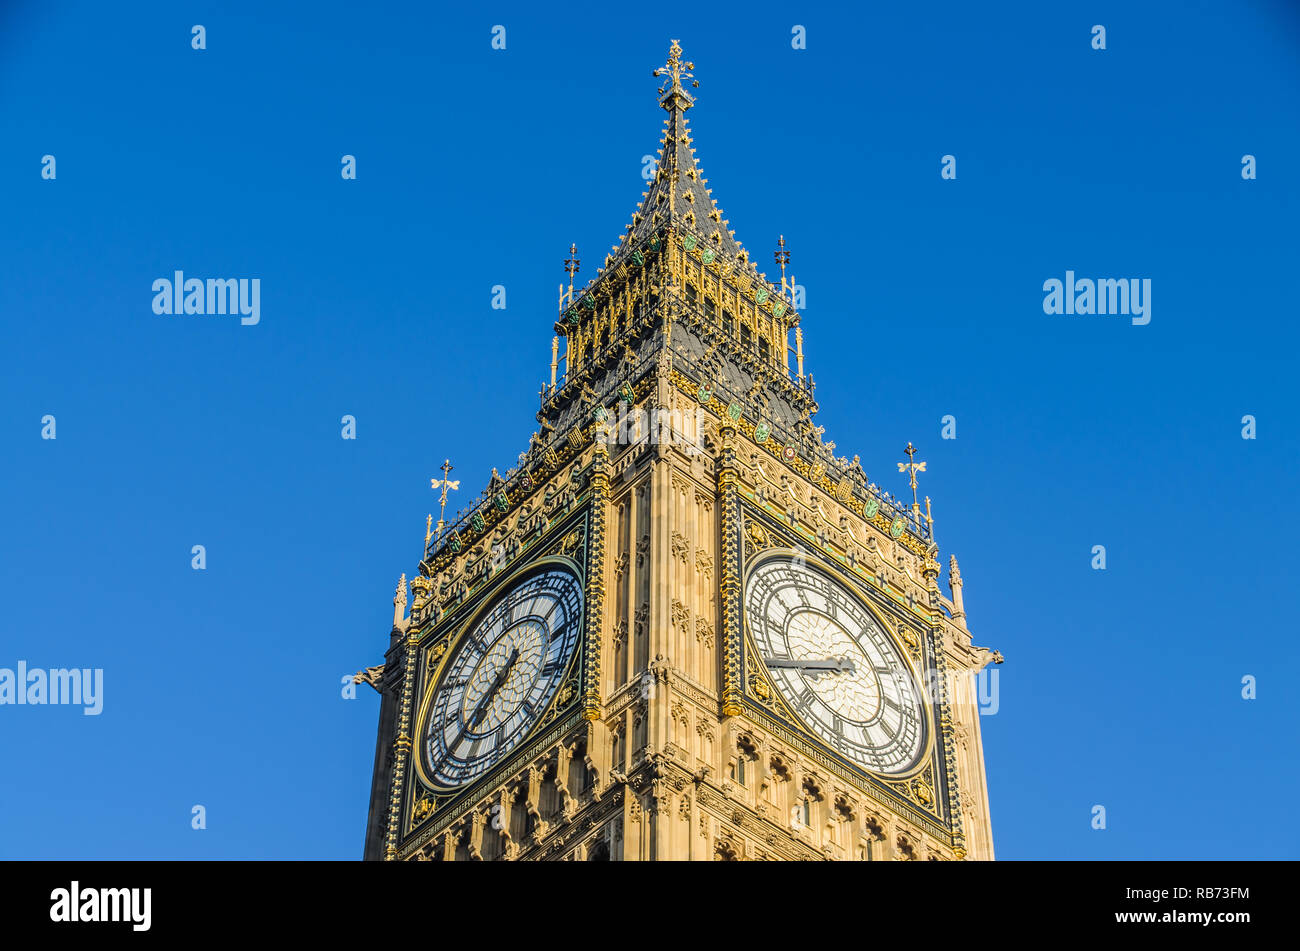 The famous Big Ben tower in London,England - Stock Image